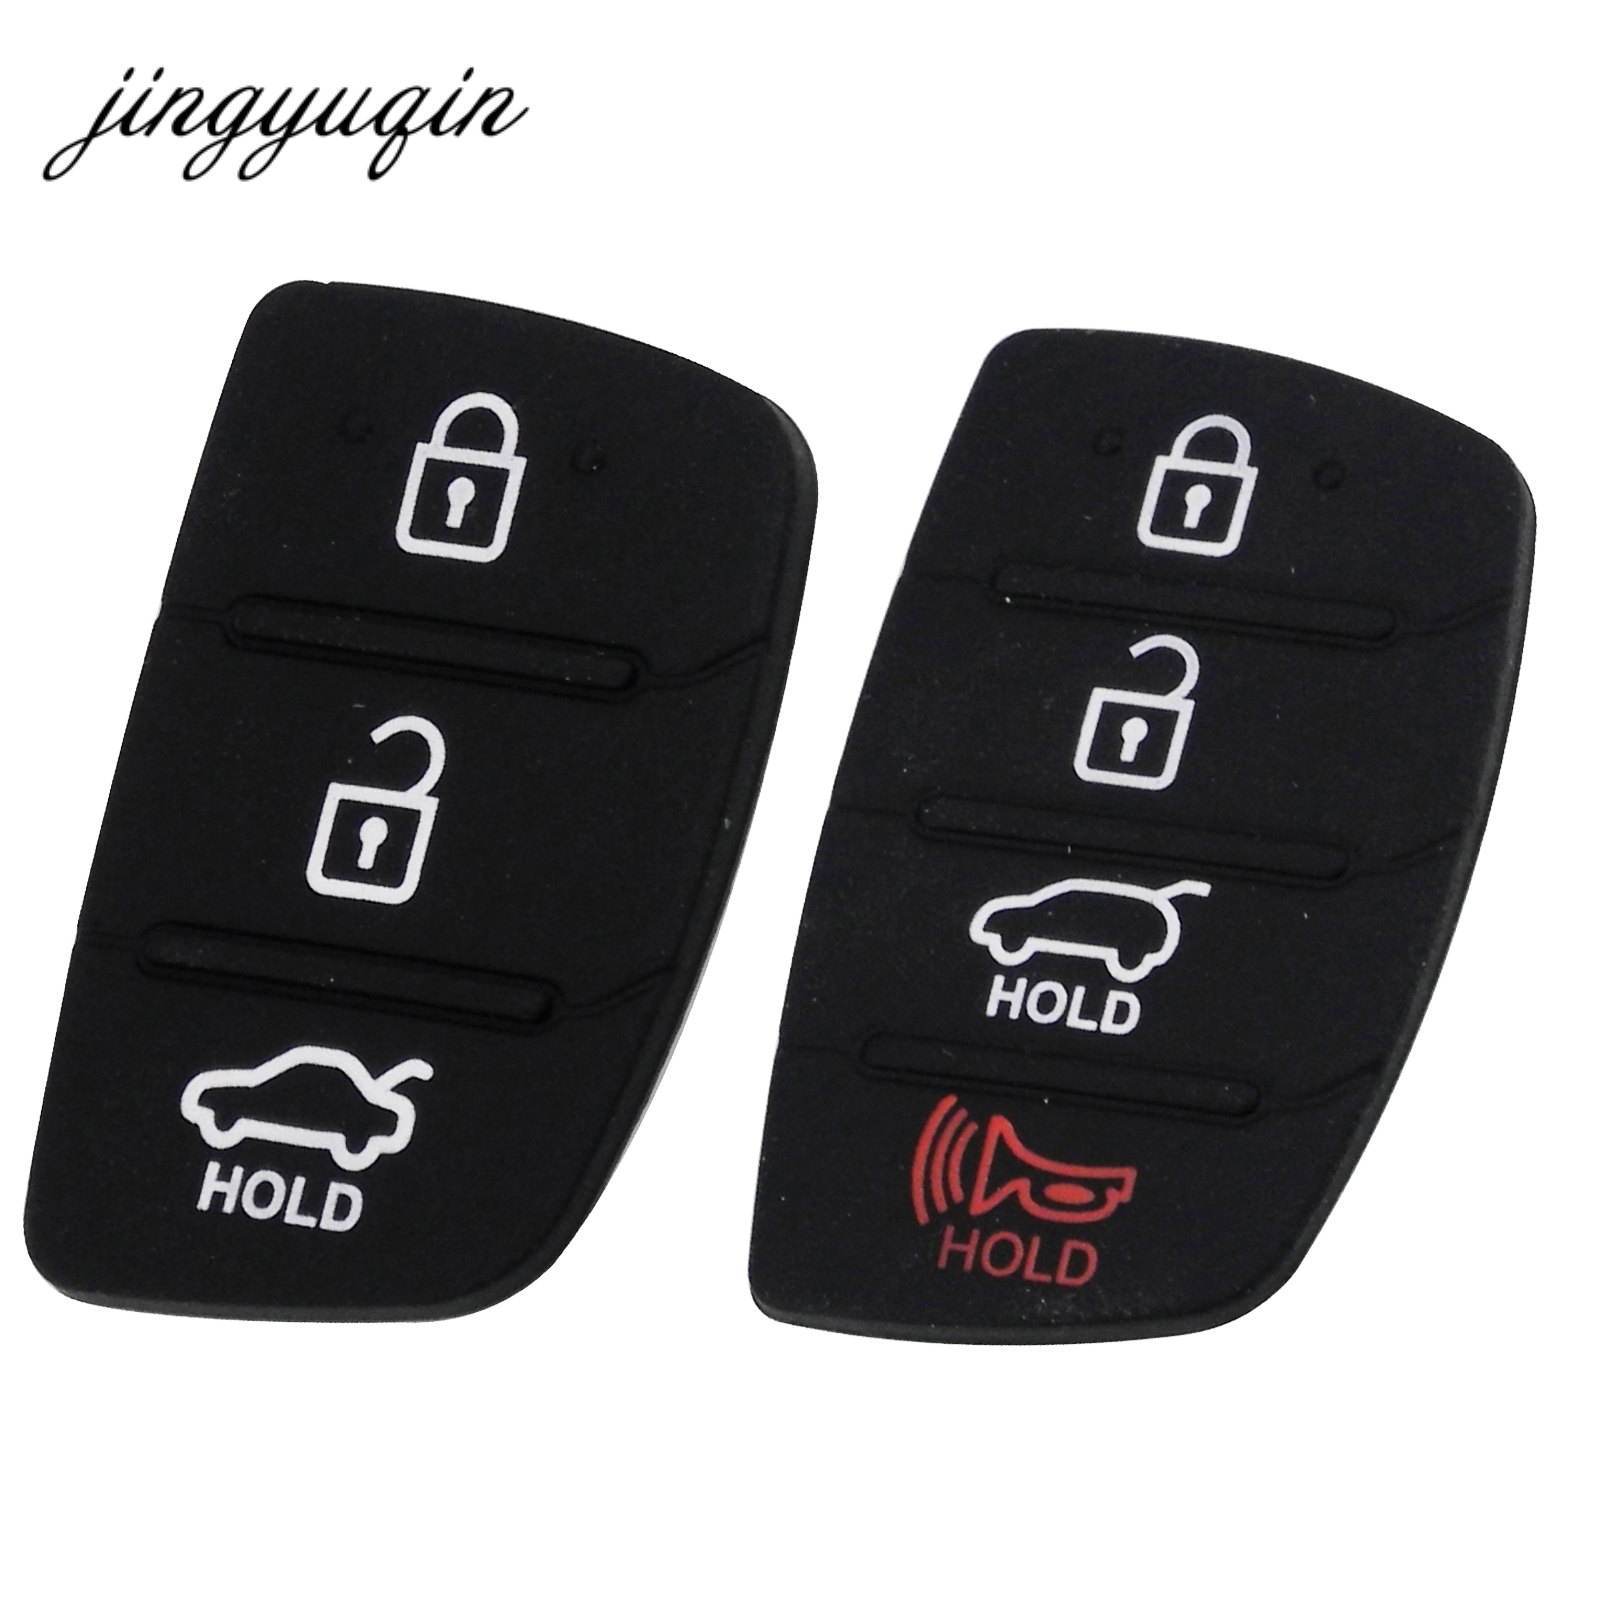 jingyuqin 10pcs lot Rubber Car Key Button Pad For Hyundai 3 4 Buttons Key Shell Blank Case Auto Parts Replacement